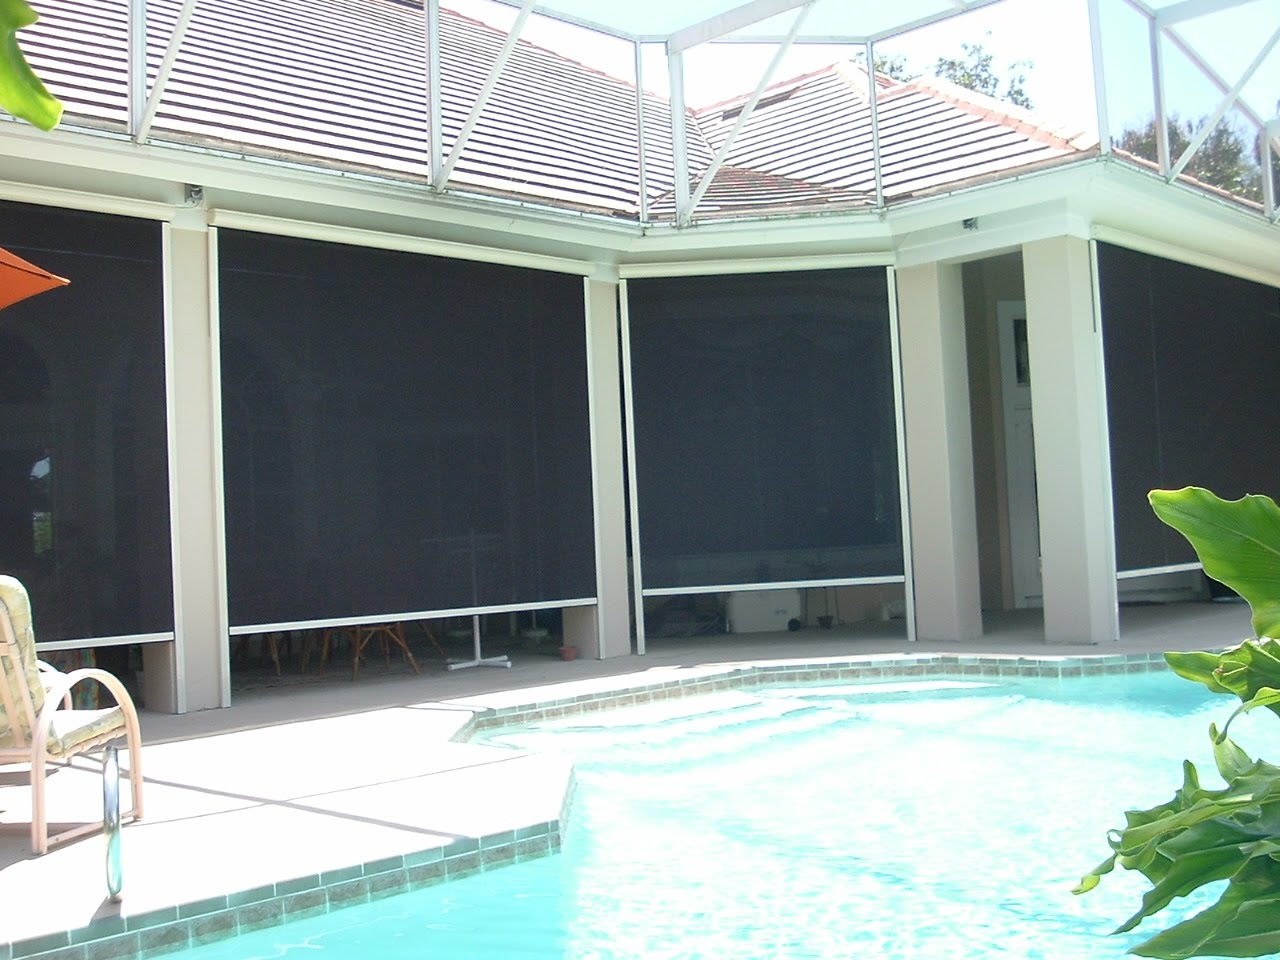 Motorized Remote Controlled Sun Screens Add Convenience While Cooling A Hot  Patio